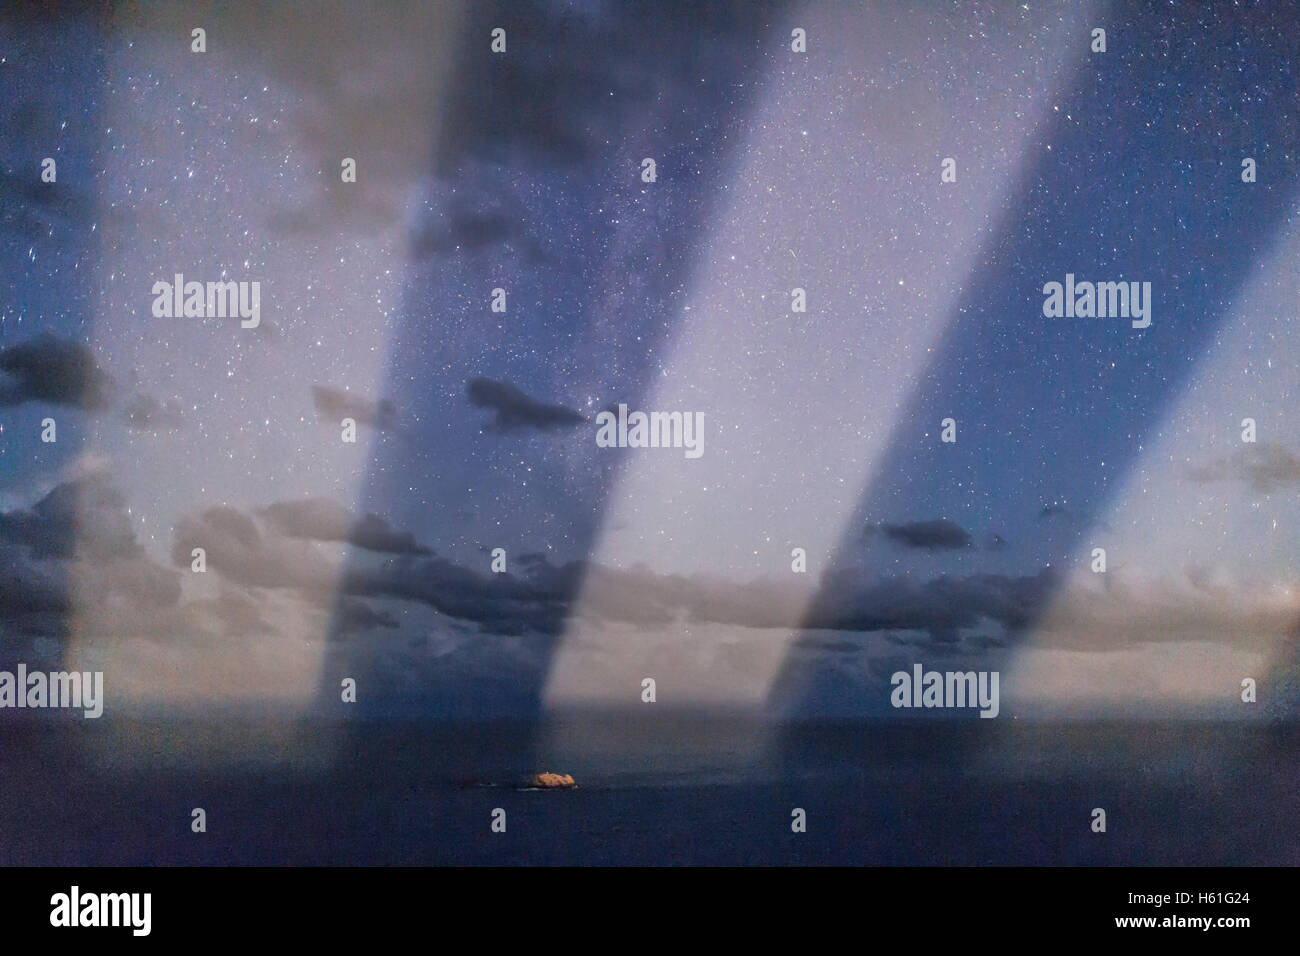 The trio of beams from the Smoky Cape Lighthouse scanning across the sea and sky in an exposure shot as short as - Stock Image